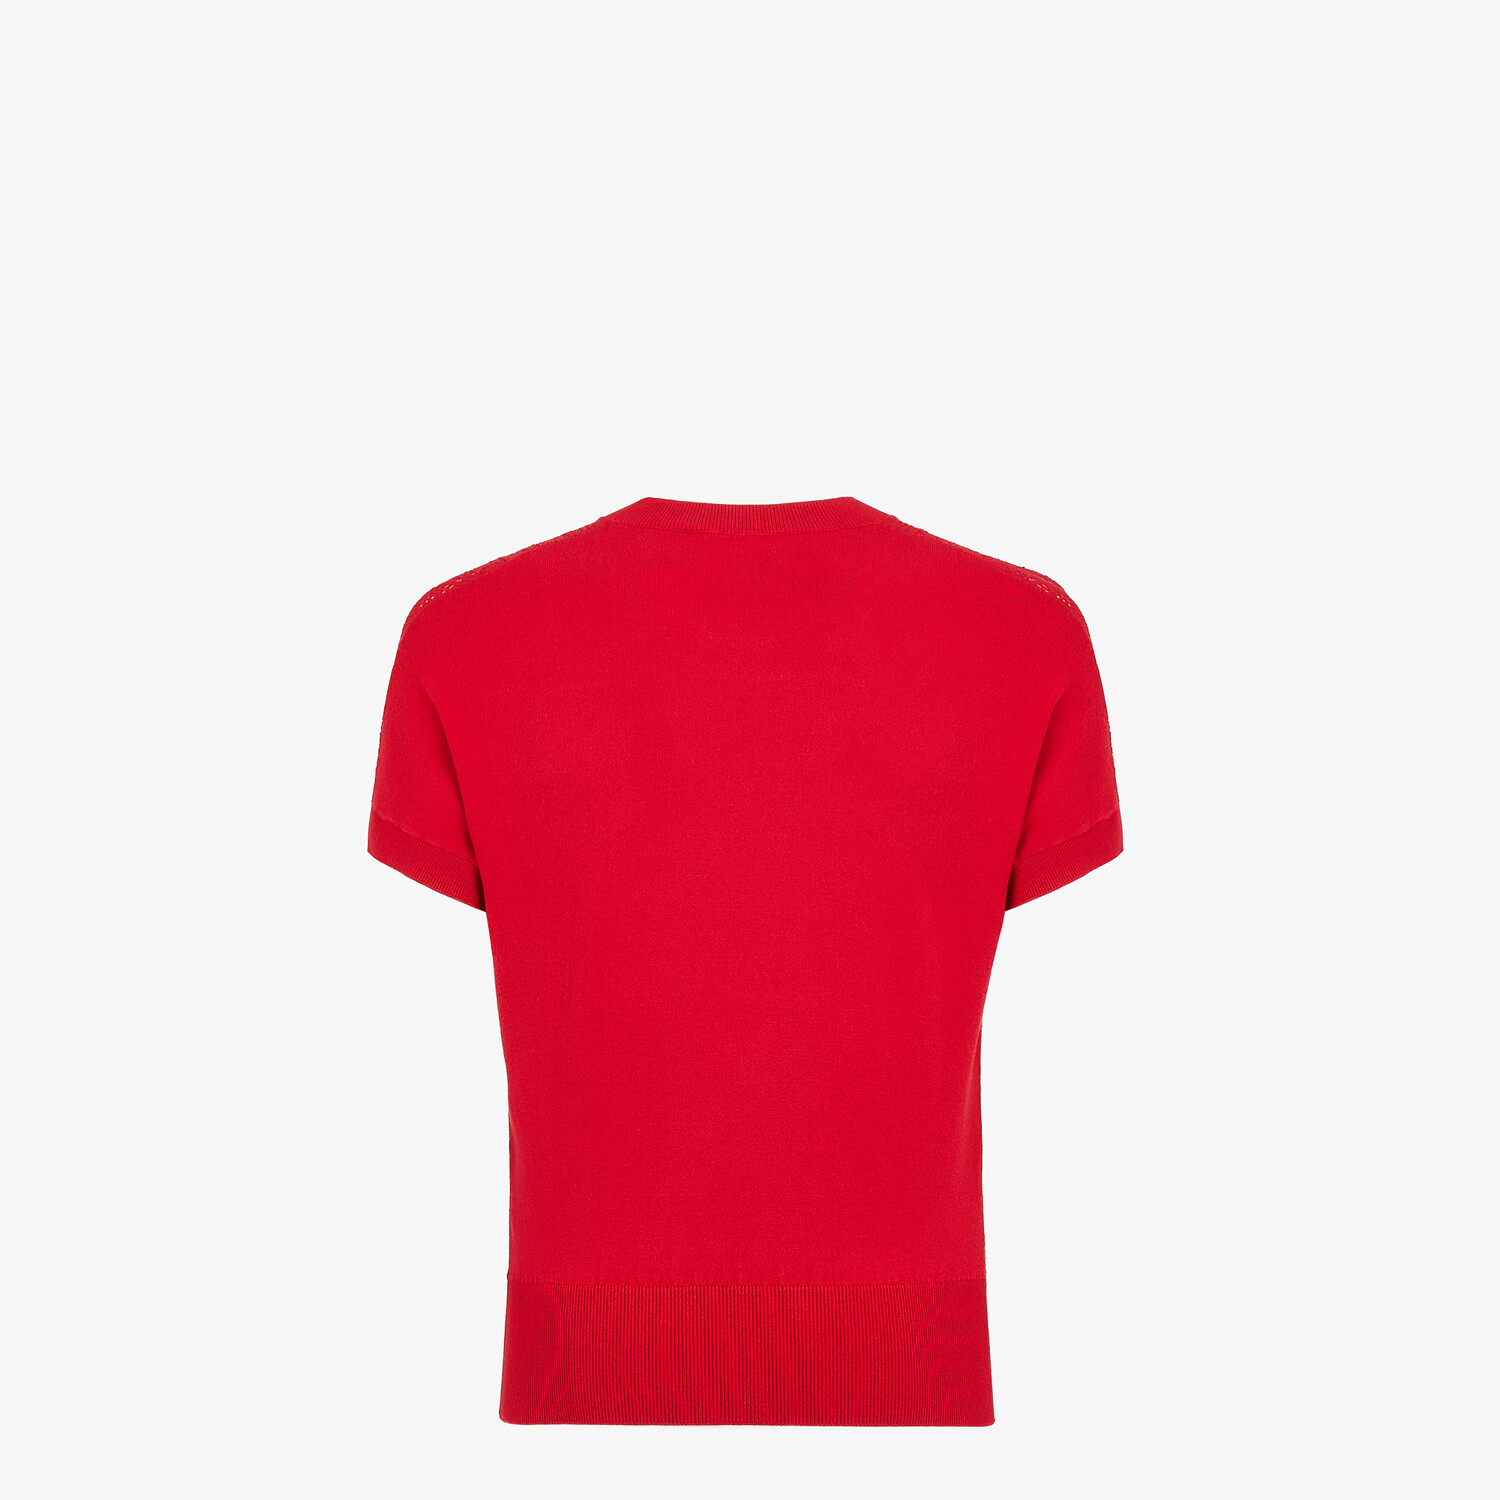 FENDI T-SHIRT - Red viscose T-shirt - view 2 detail